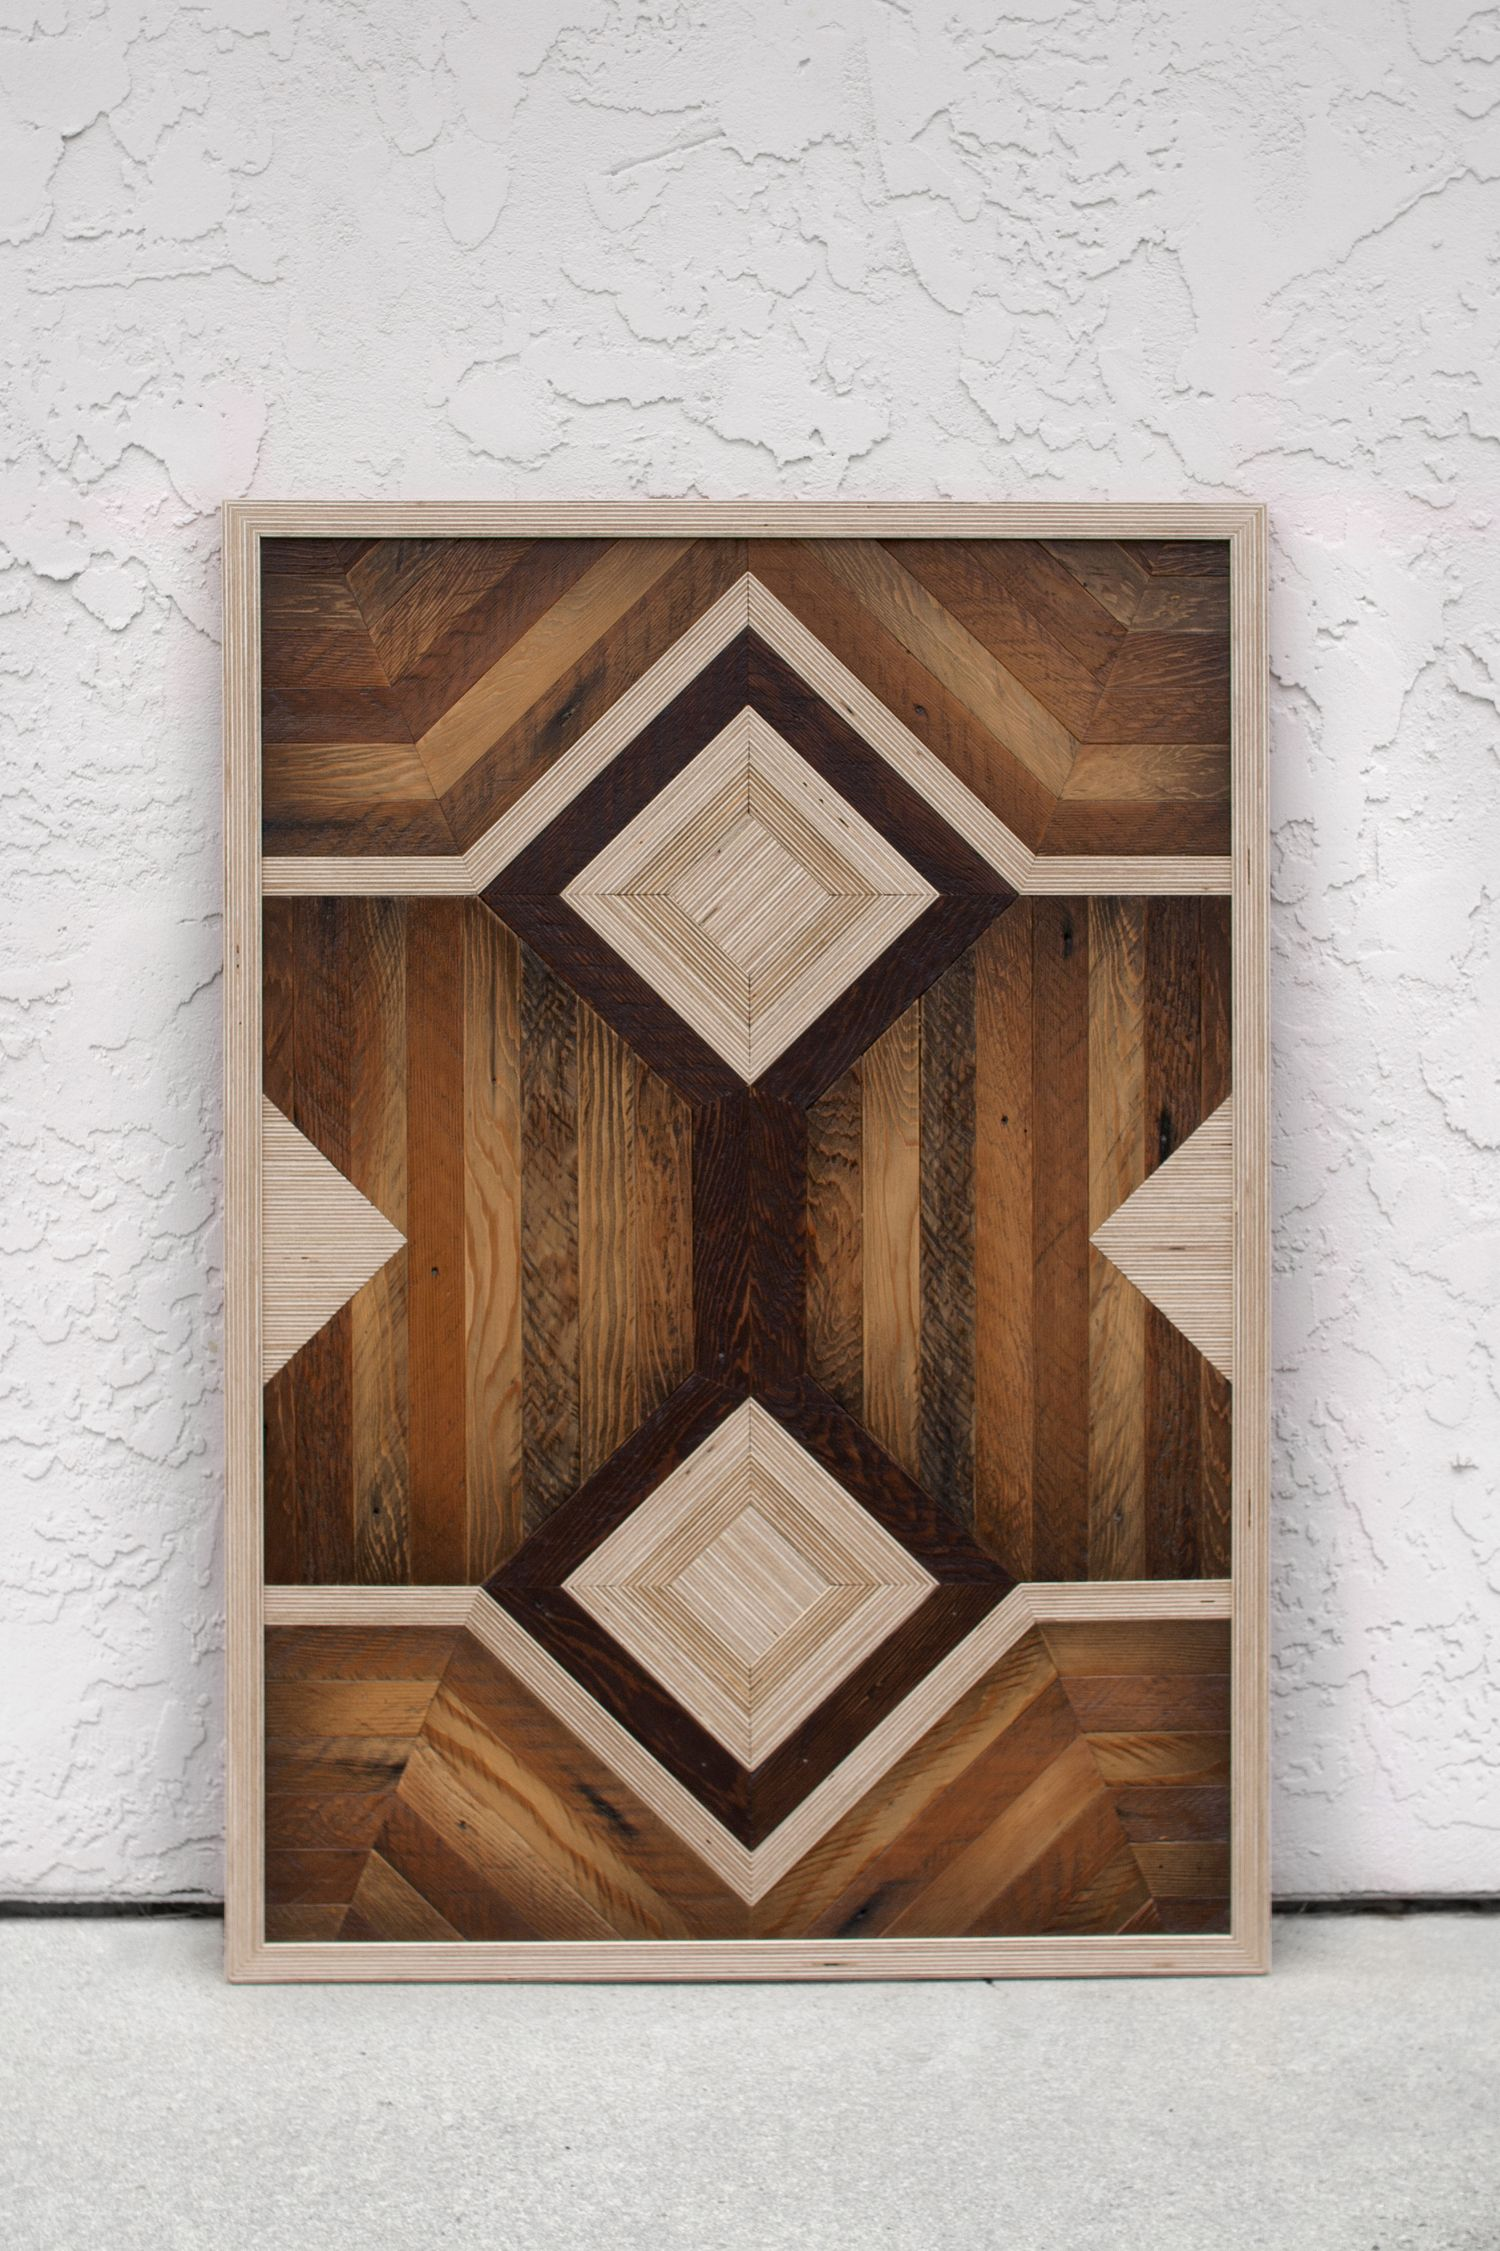 Decorative wall panel made of reclaimed wood (lath) and Baltic birch plywood